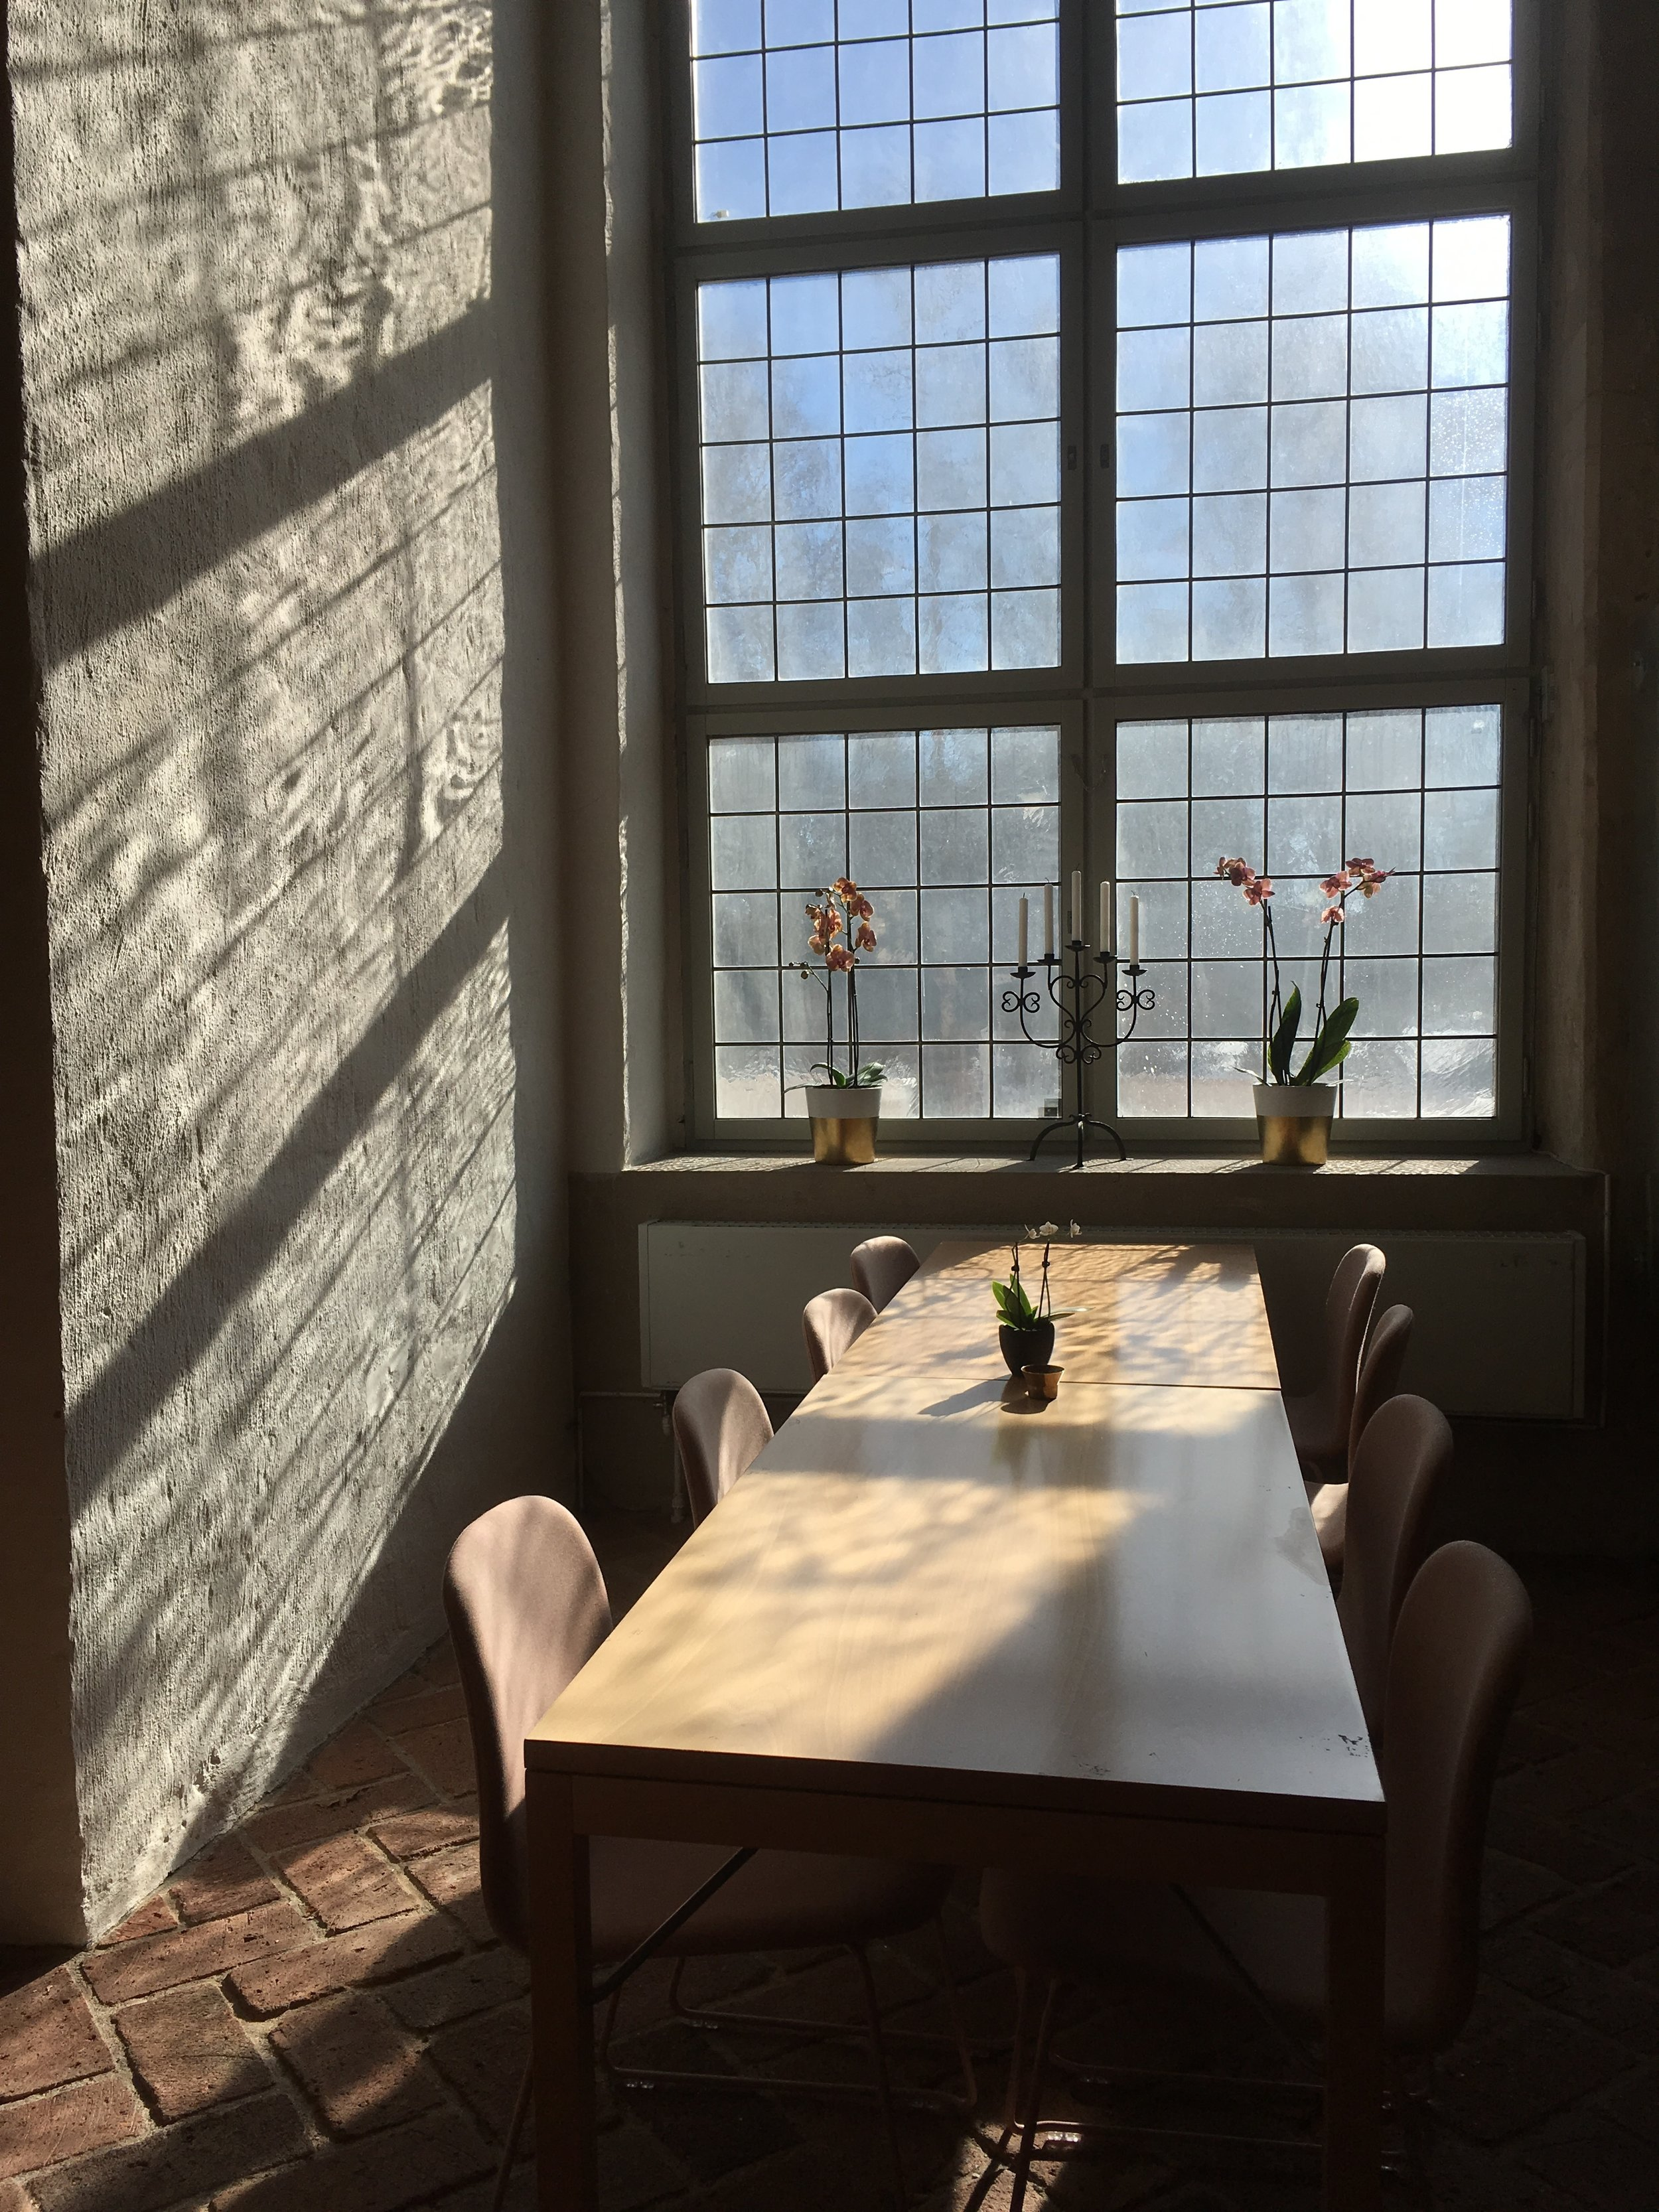 Basement cafe has both nice venue with large windows and decent offering